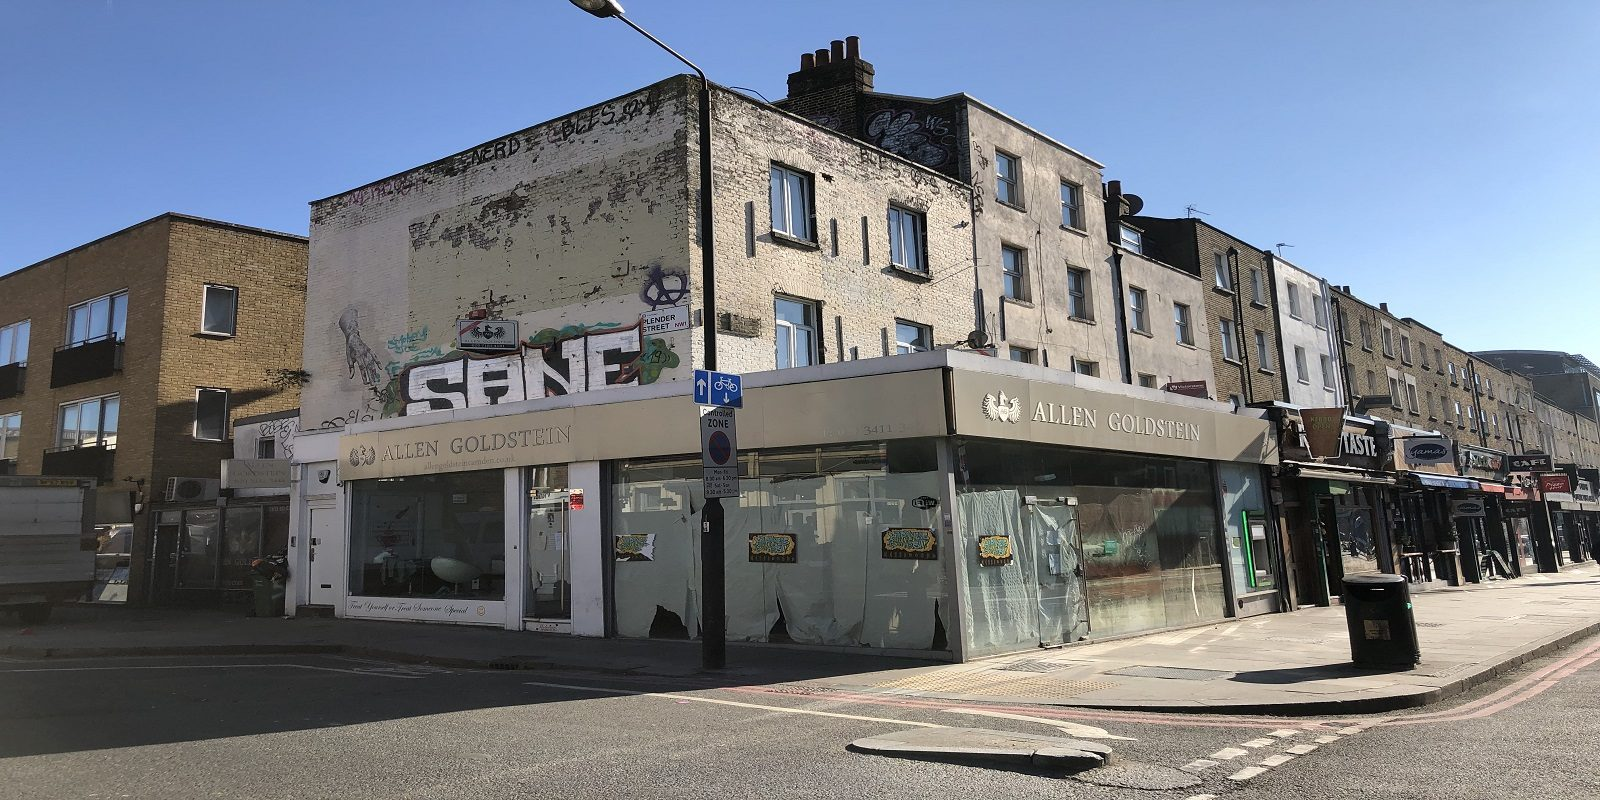 PRIME HIGH STREET LOCATION – CORNER RETAIL PREMISES TO LET IN CAMDEN